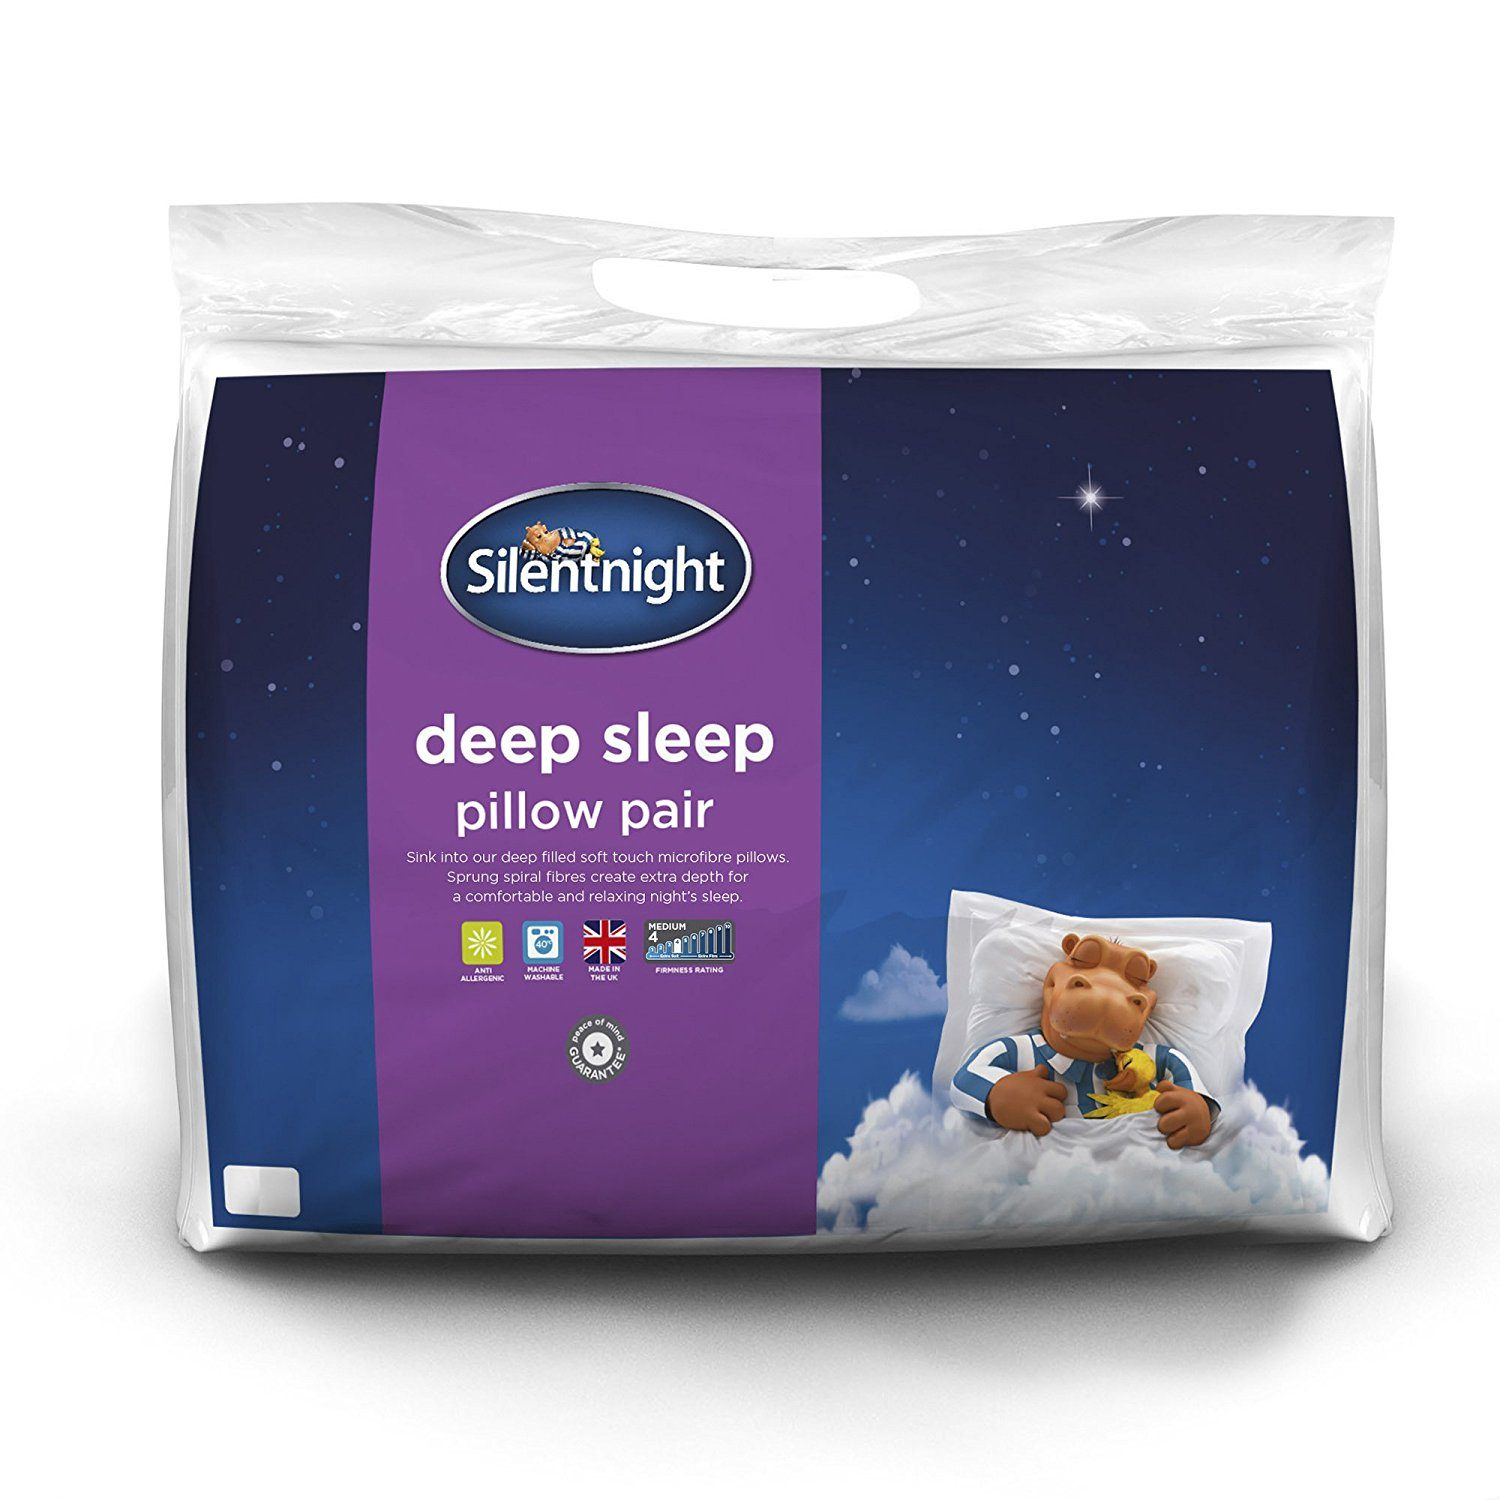 Silentnight Deep Sleep Pillow Review